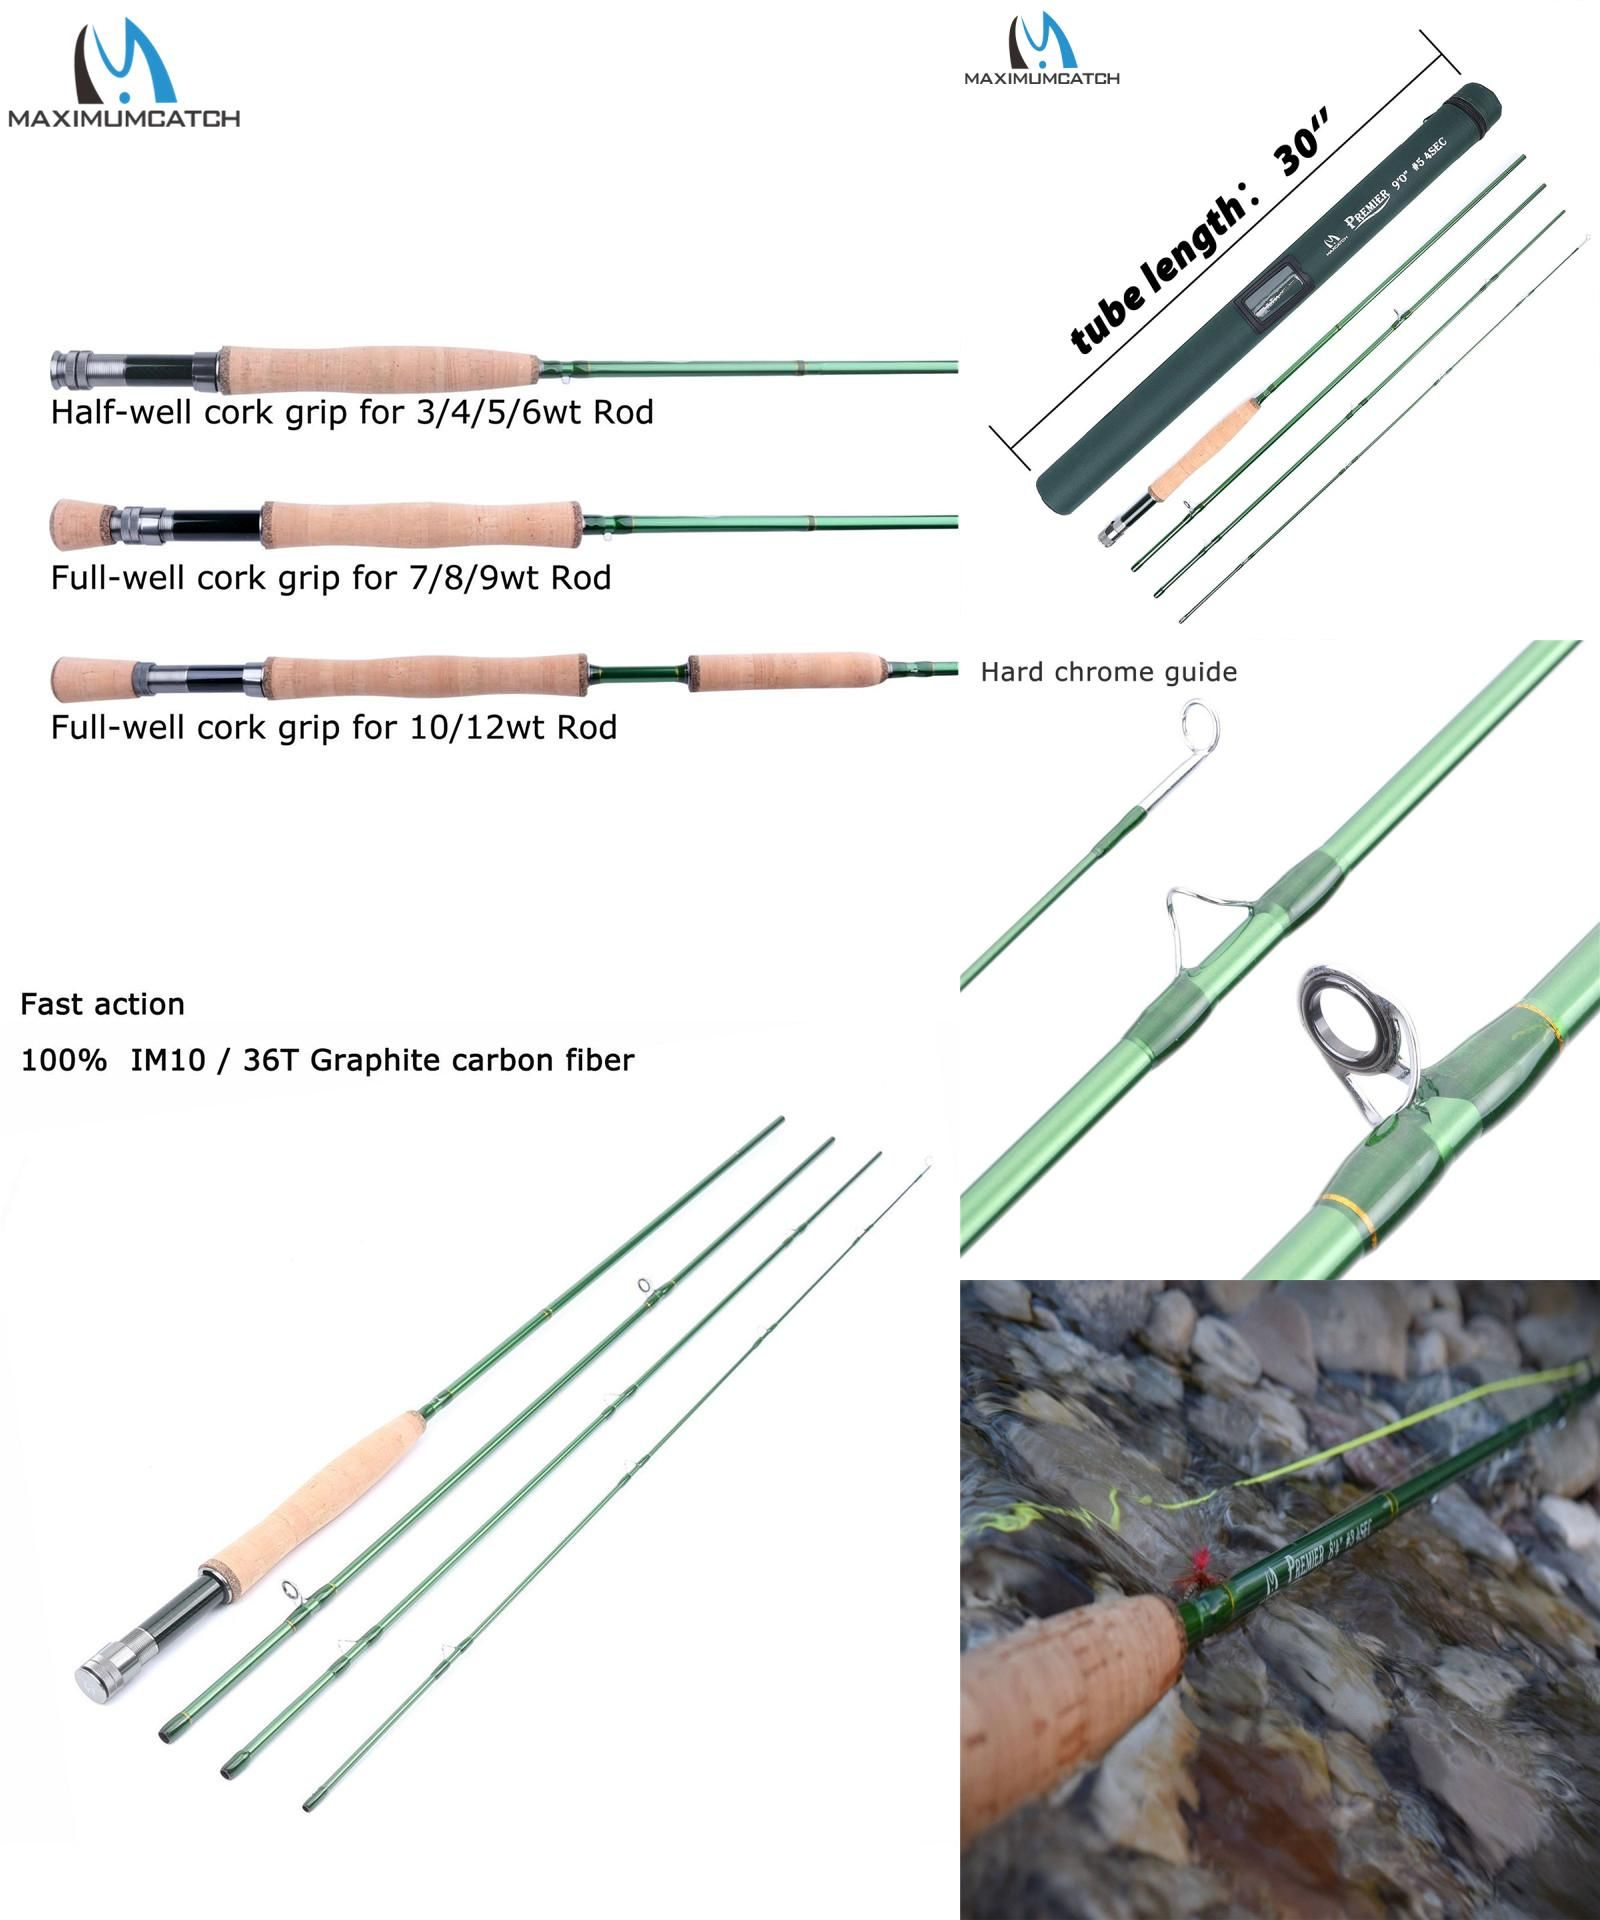 Visit To Buy Maximumcatch 3 12wt Fly Rod Carbon Fiber Fast Action Fly Fishing Rod With Cordura Tube Fly Fishing Rod A Fly Fishing Rods Fly Rods Carbon Fiber